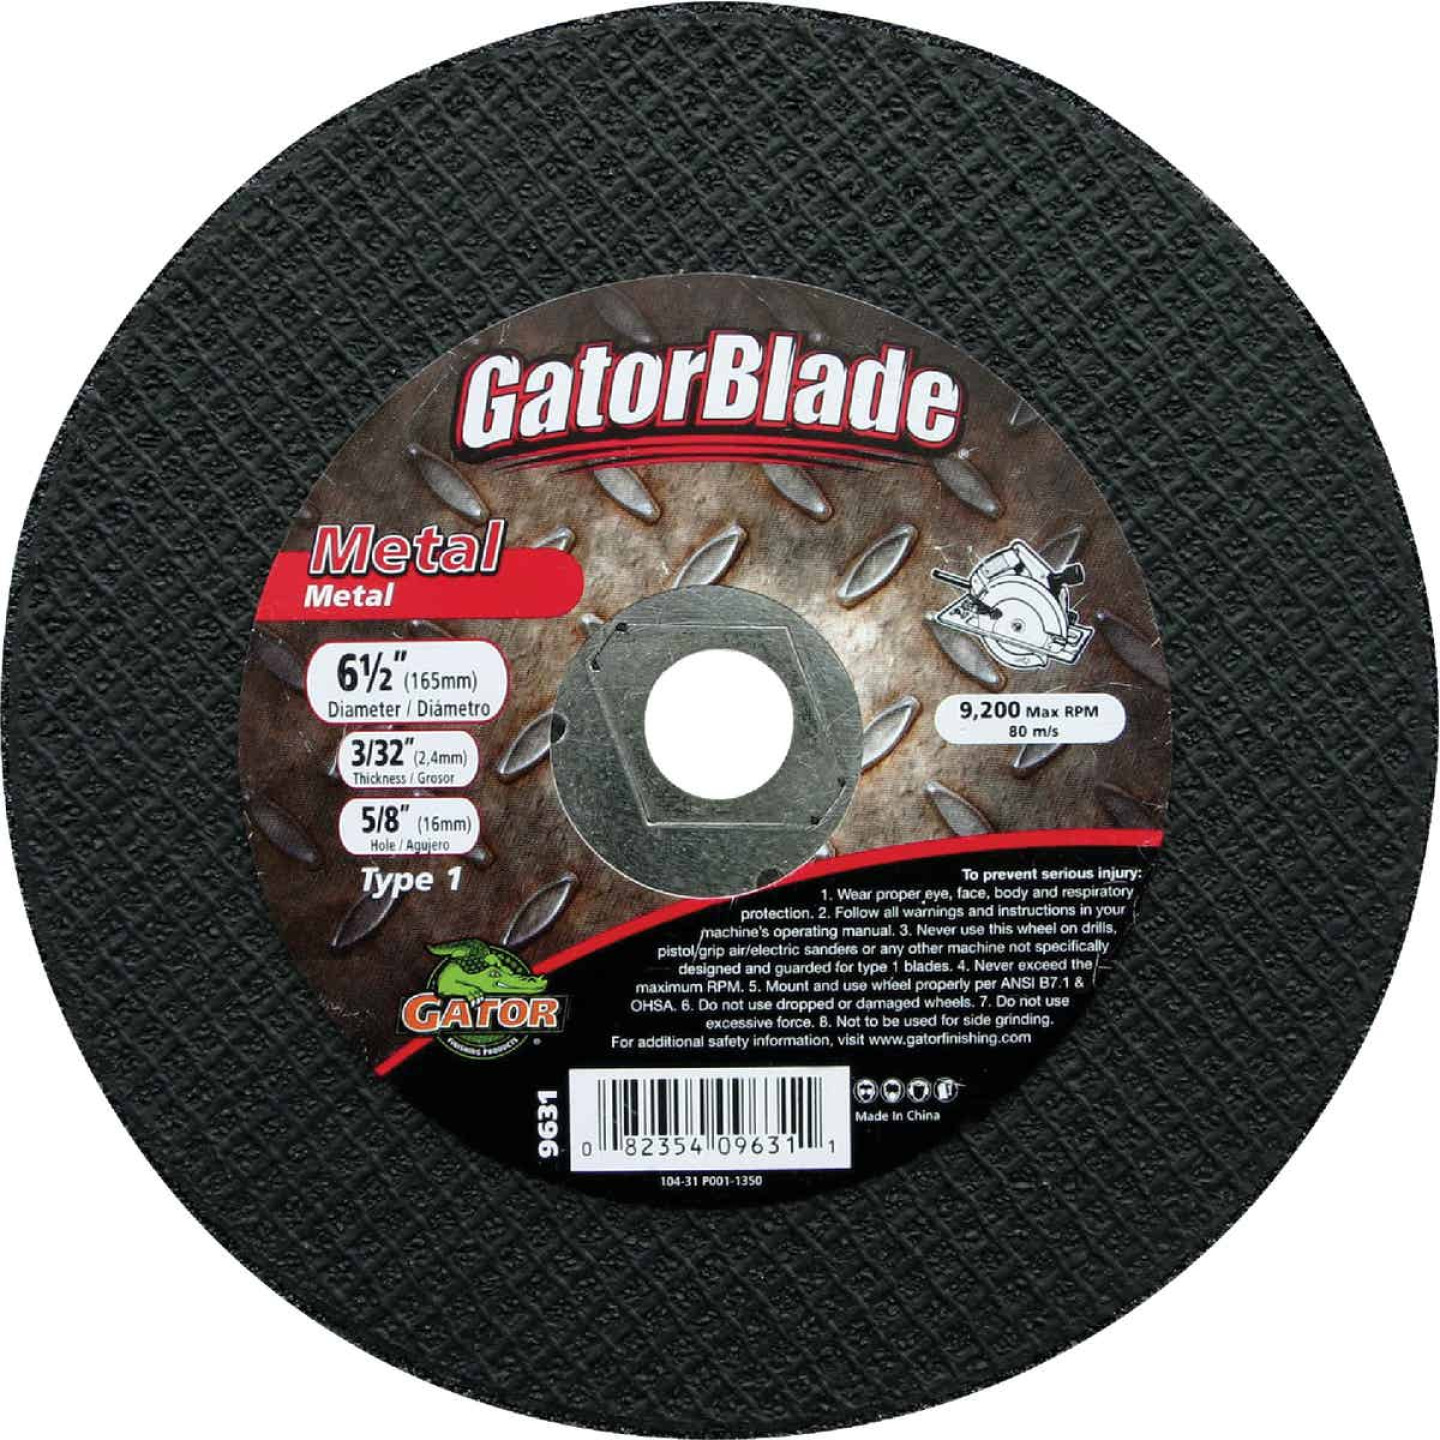 Gator Blade Type 1 6-1/2 In. x 3/32 In. x 5/8 In. Metal Cut-Off Wheel Image 1